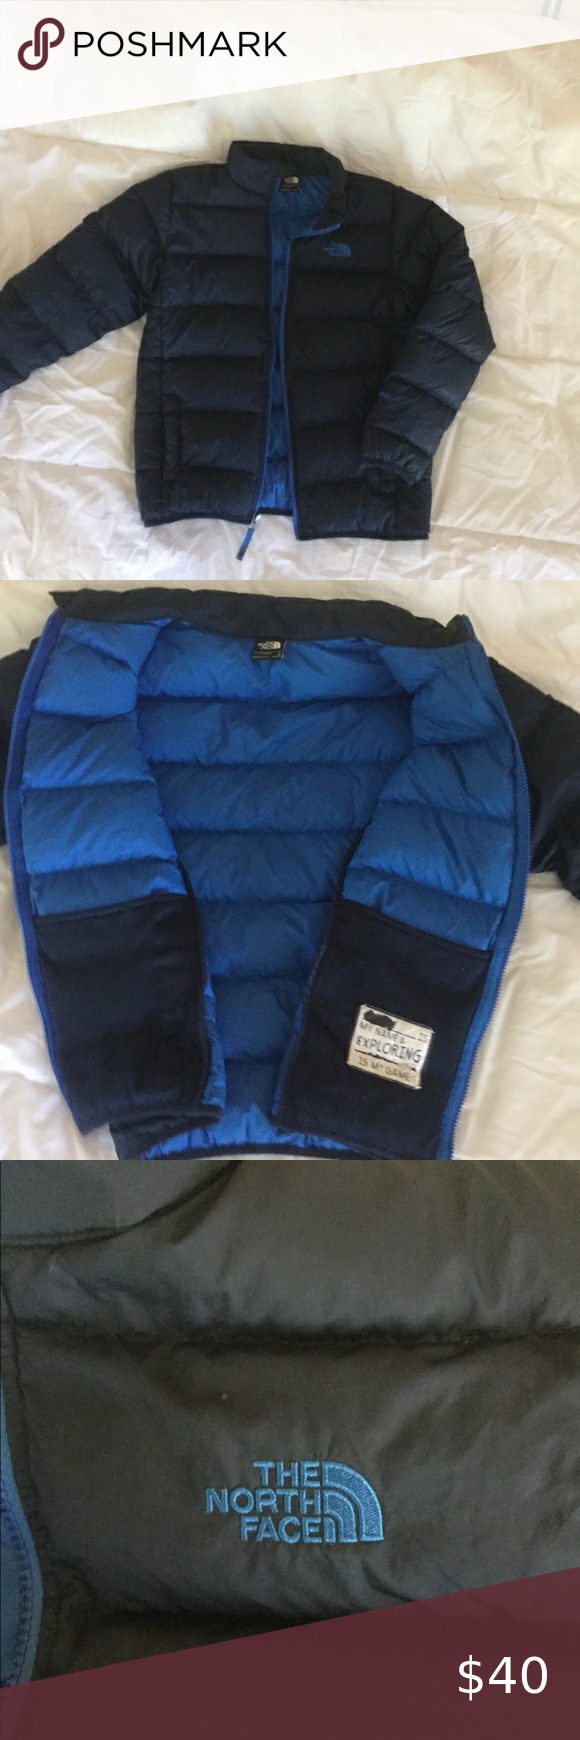 Kids North Face Puffer Jacket Kids North Face North Face Puffer Jacket North Face Puffer [ 1740 x 580 Pixel ]